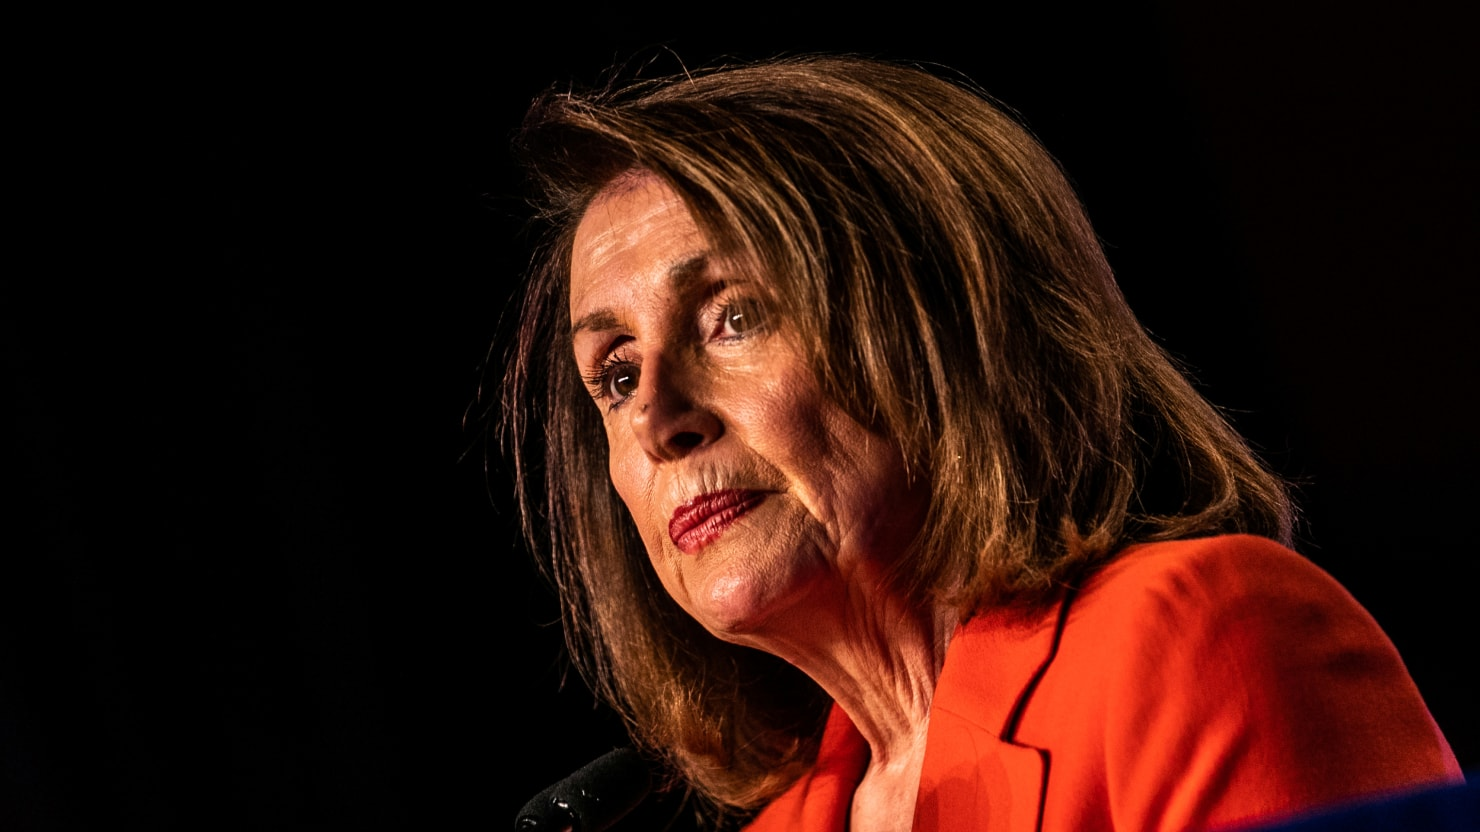 Pelosi Urges Mueller to Testify Publicly to 'Restore Trust' in Handling of Report